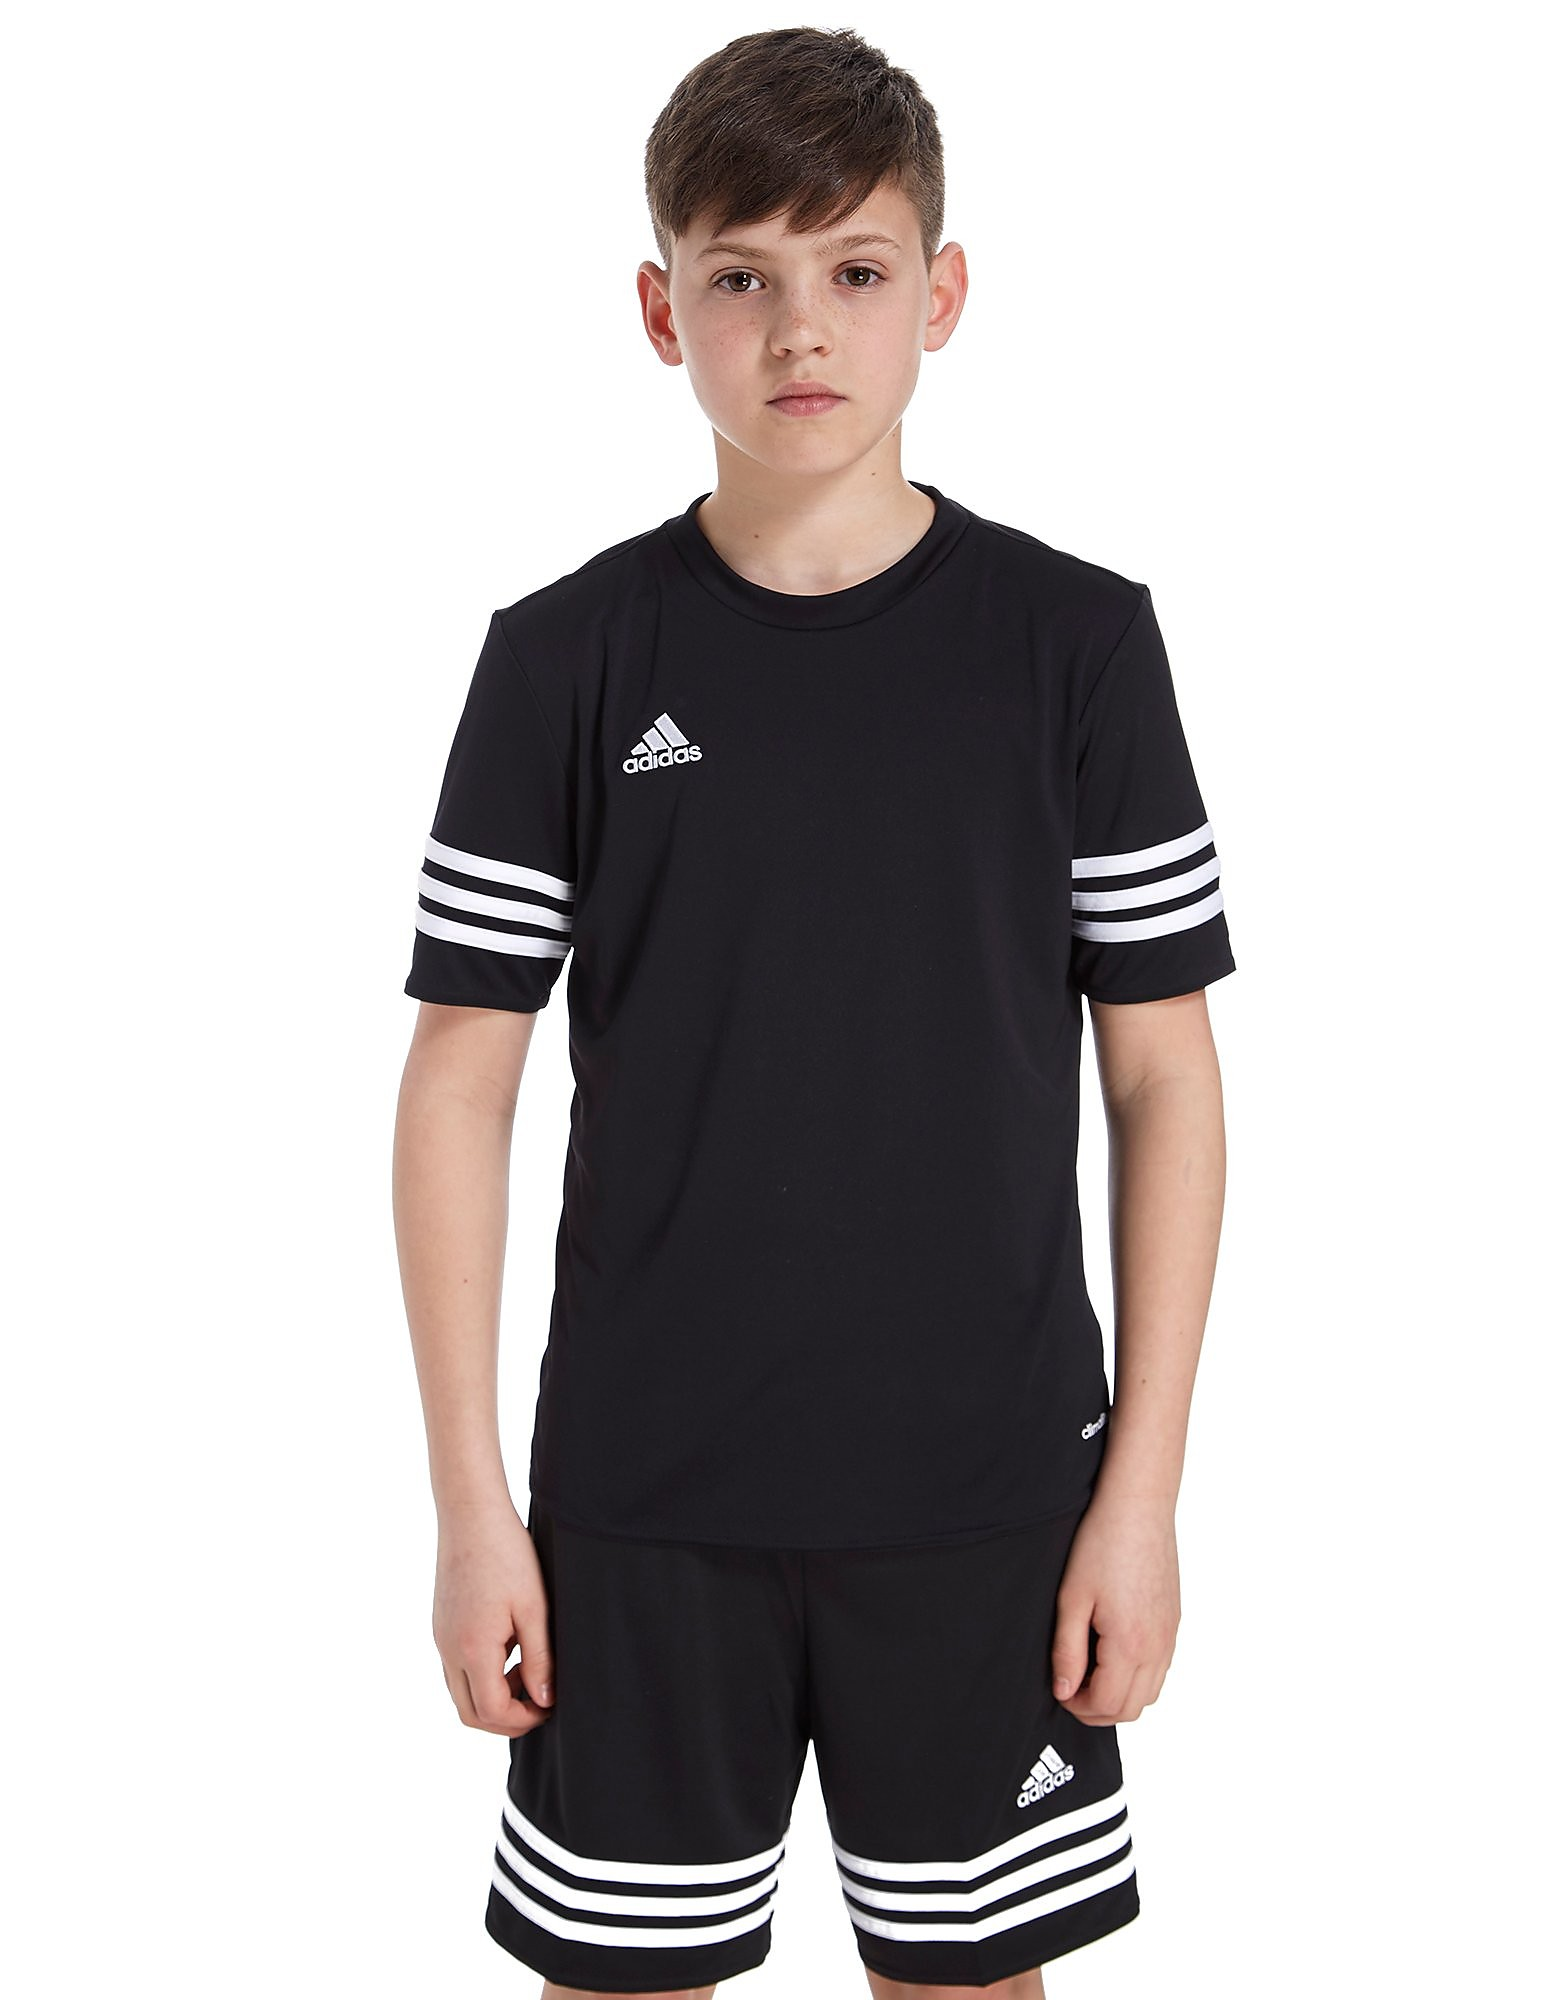 adidas Entrada T-Shirt Junior